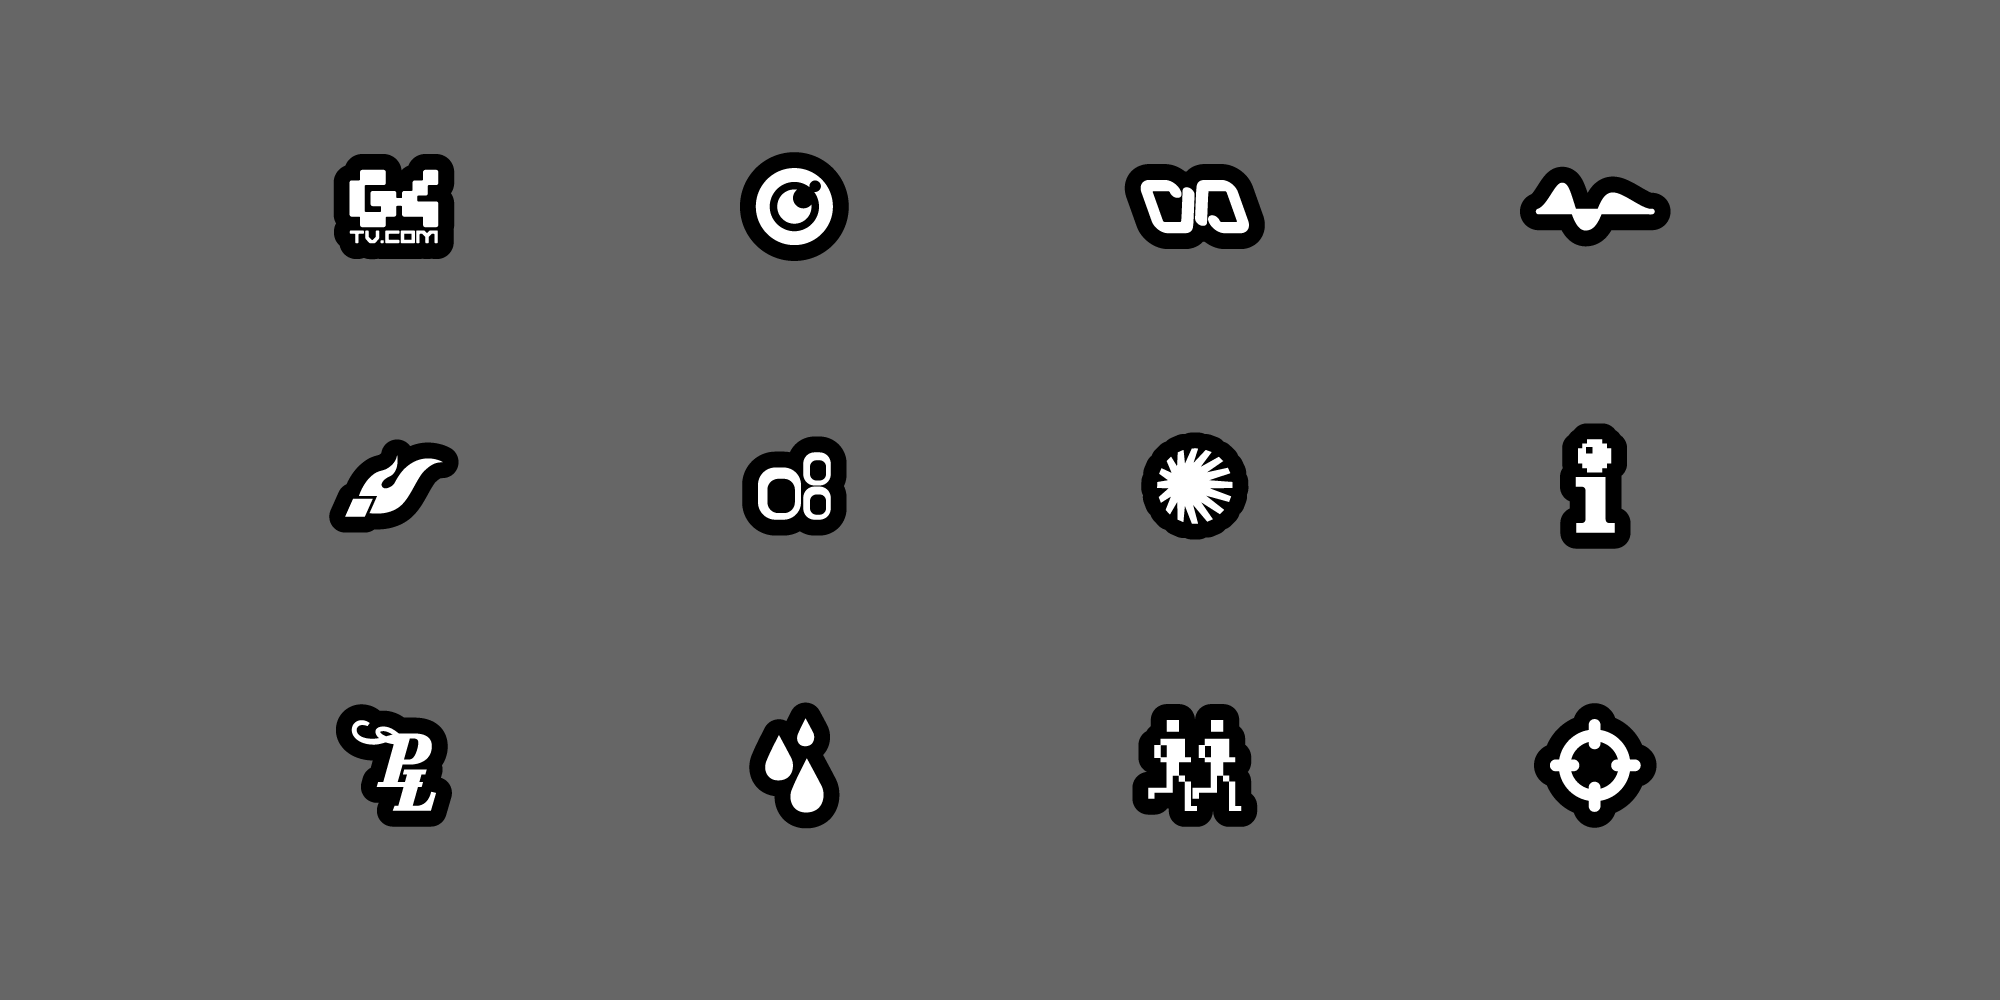 Show iconography system